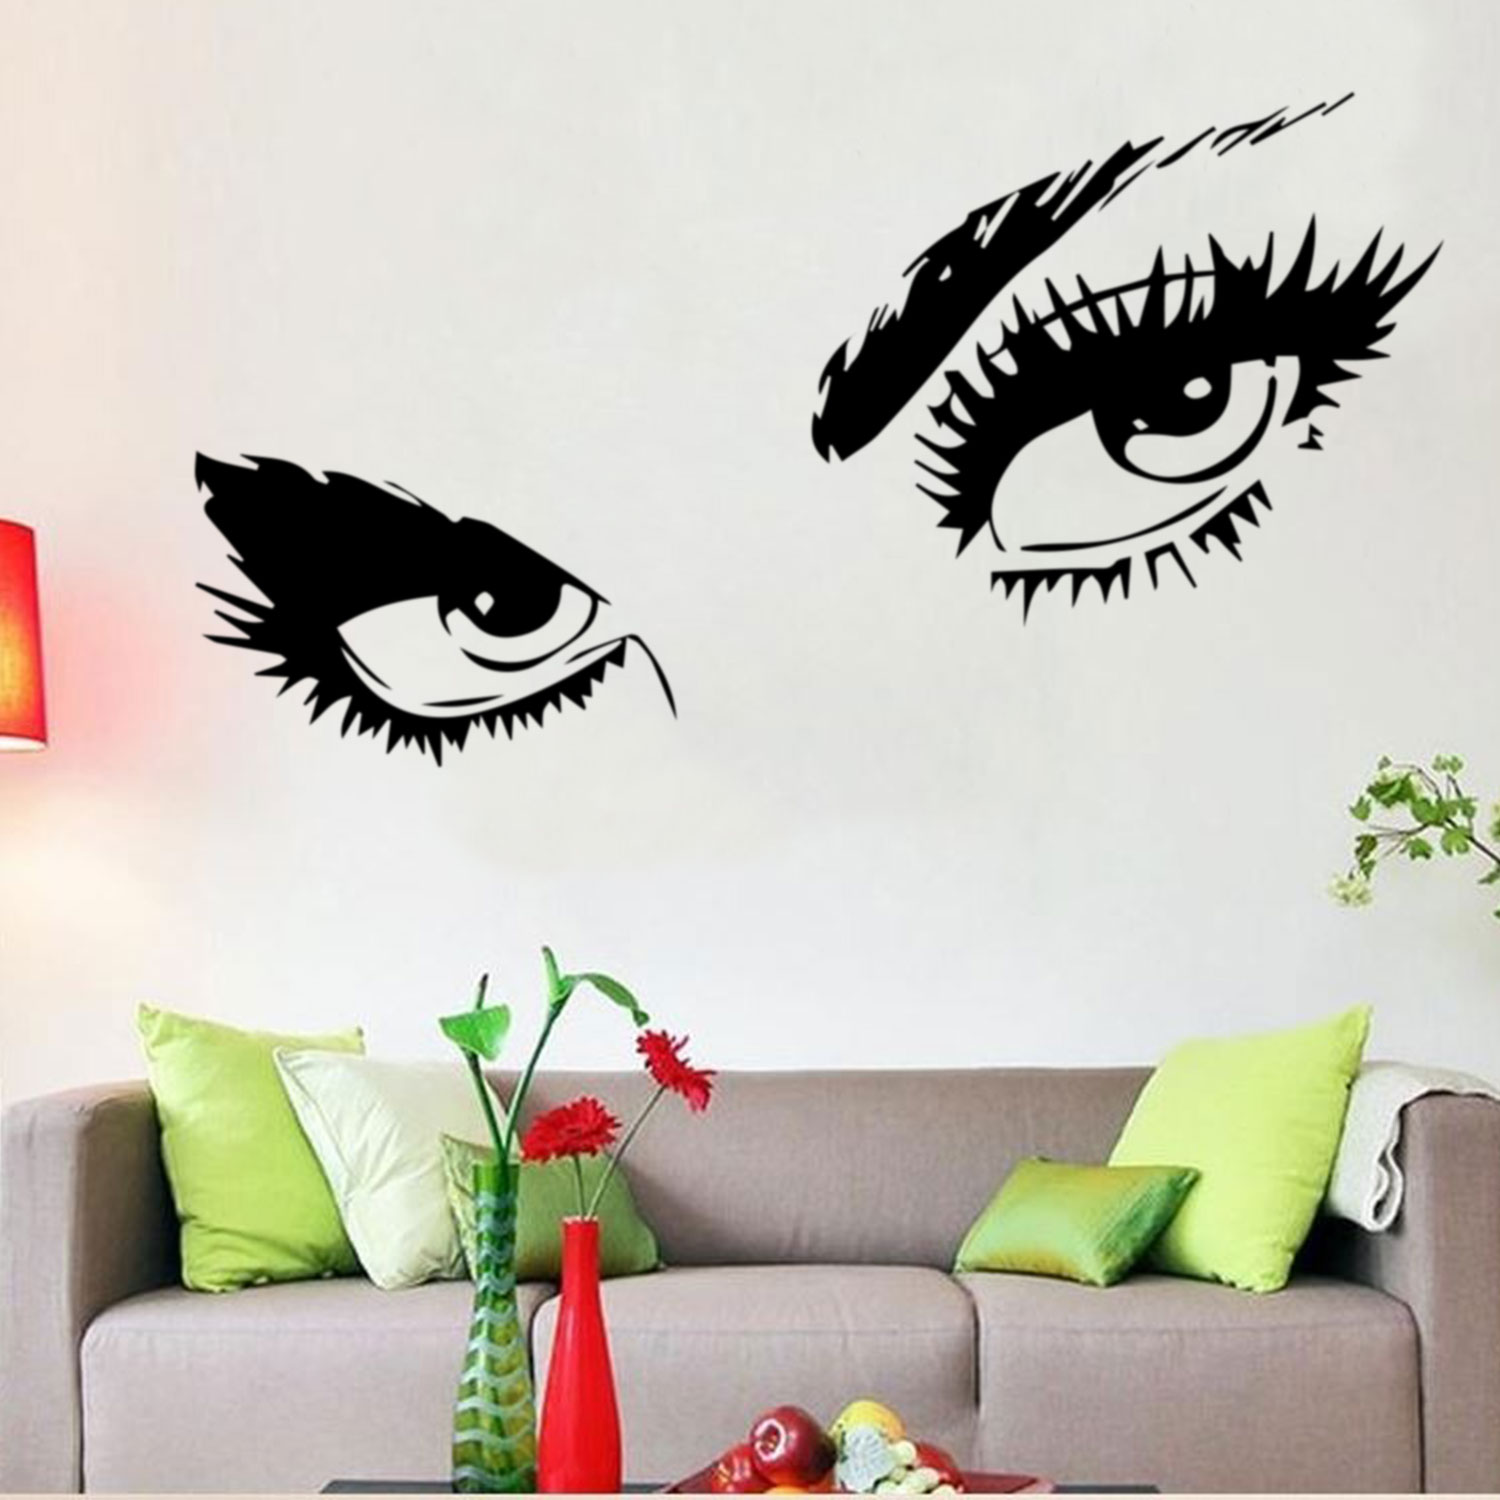 Eyes decal ebay audrey hepburn sexy eyes attractive eye wall decal art decor vinyl sticker amipublicfo Gallery